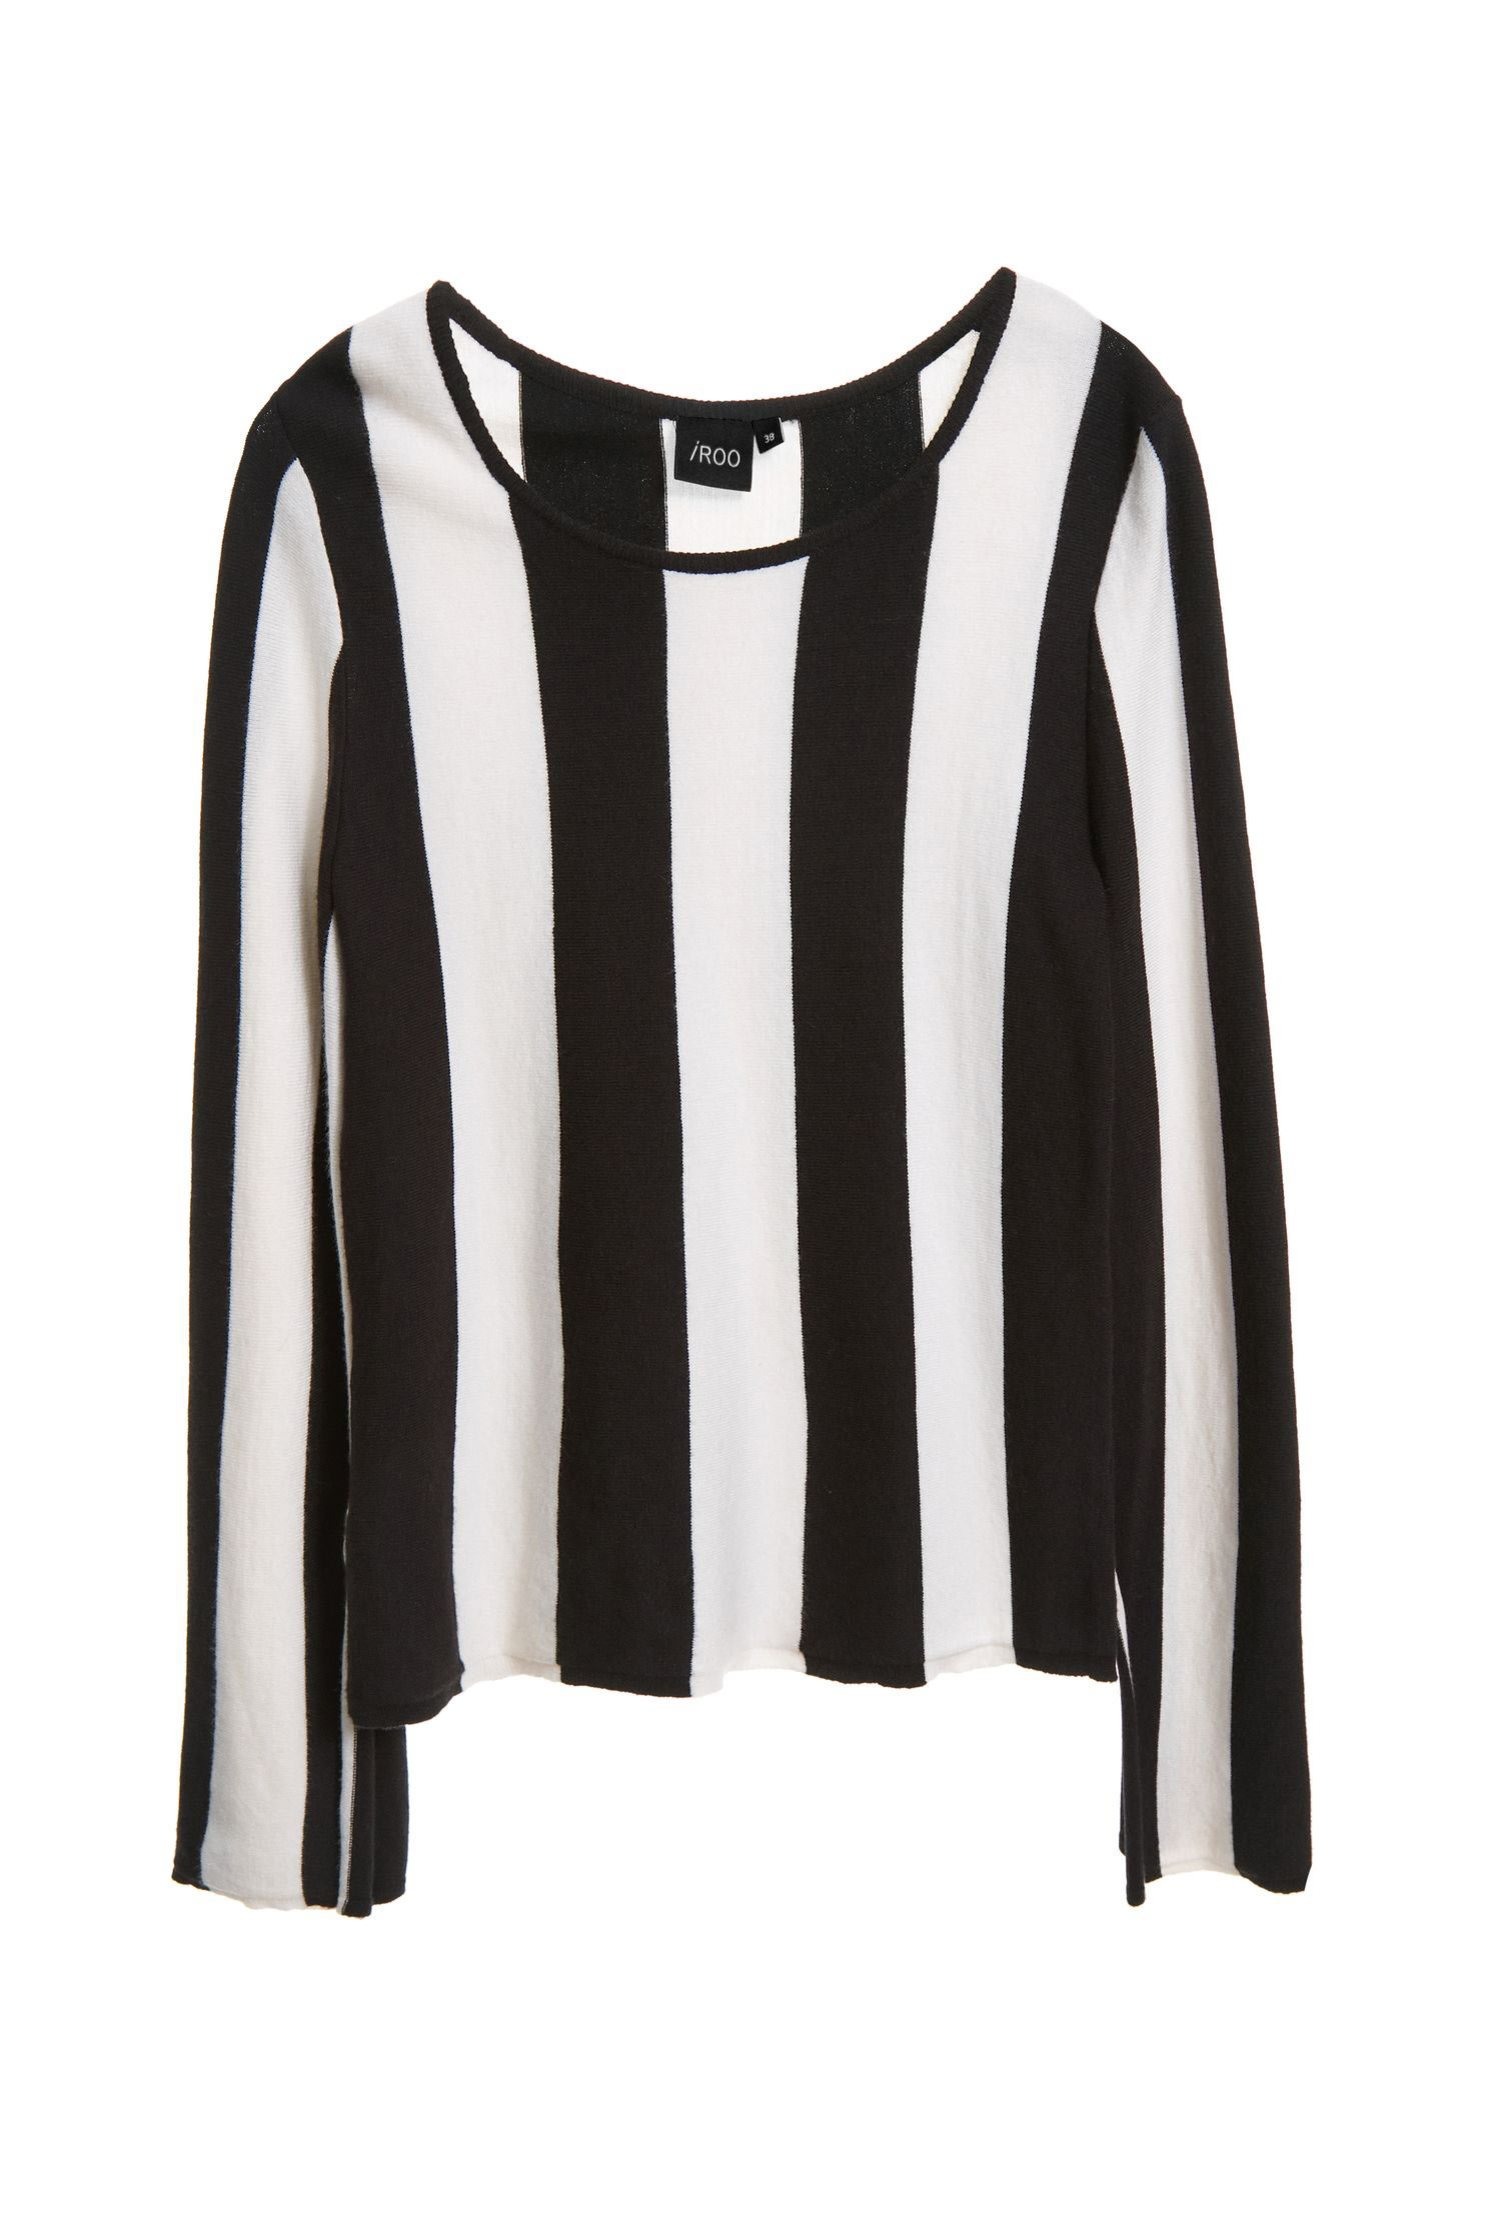 Thick striped knitted jumper